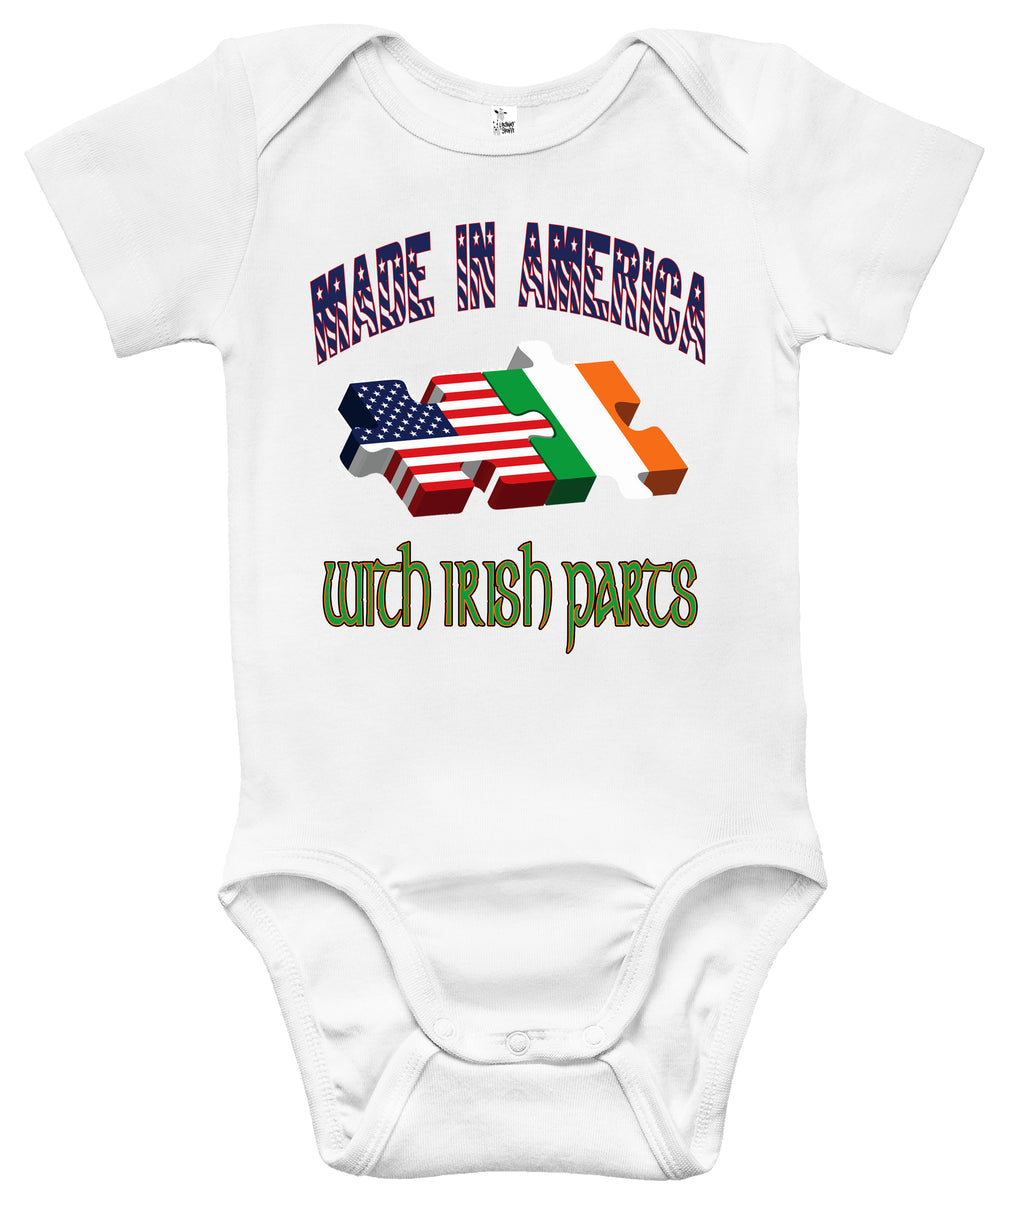 Baby Bodysuit - Made in America With Irish Parts